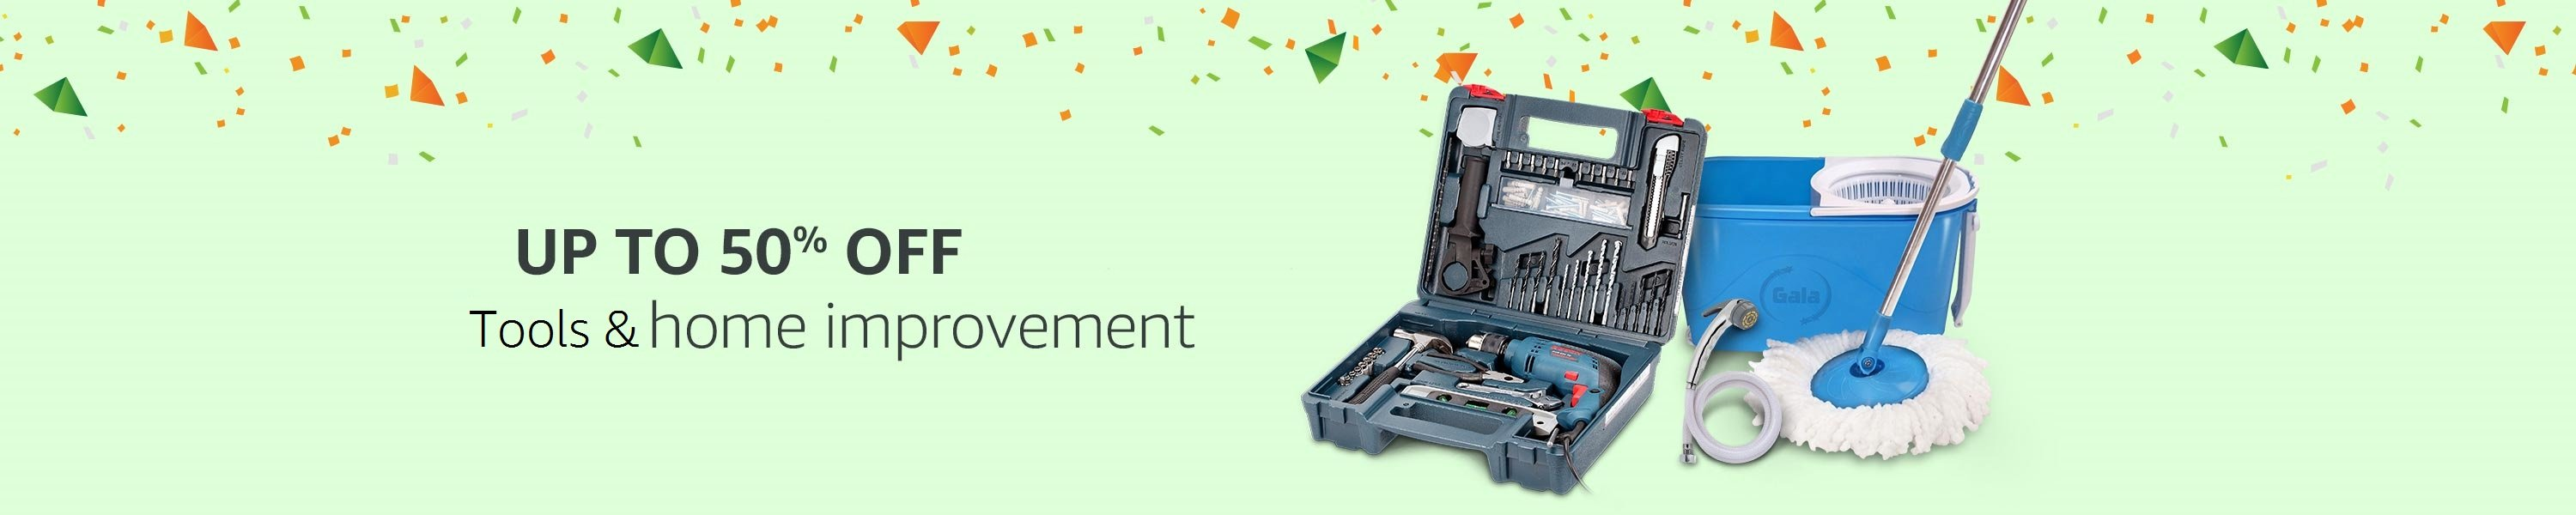 Up to 50% off Home Improvement